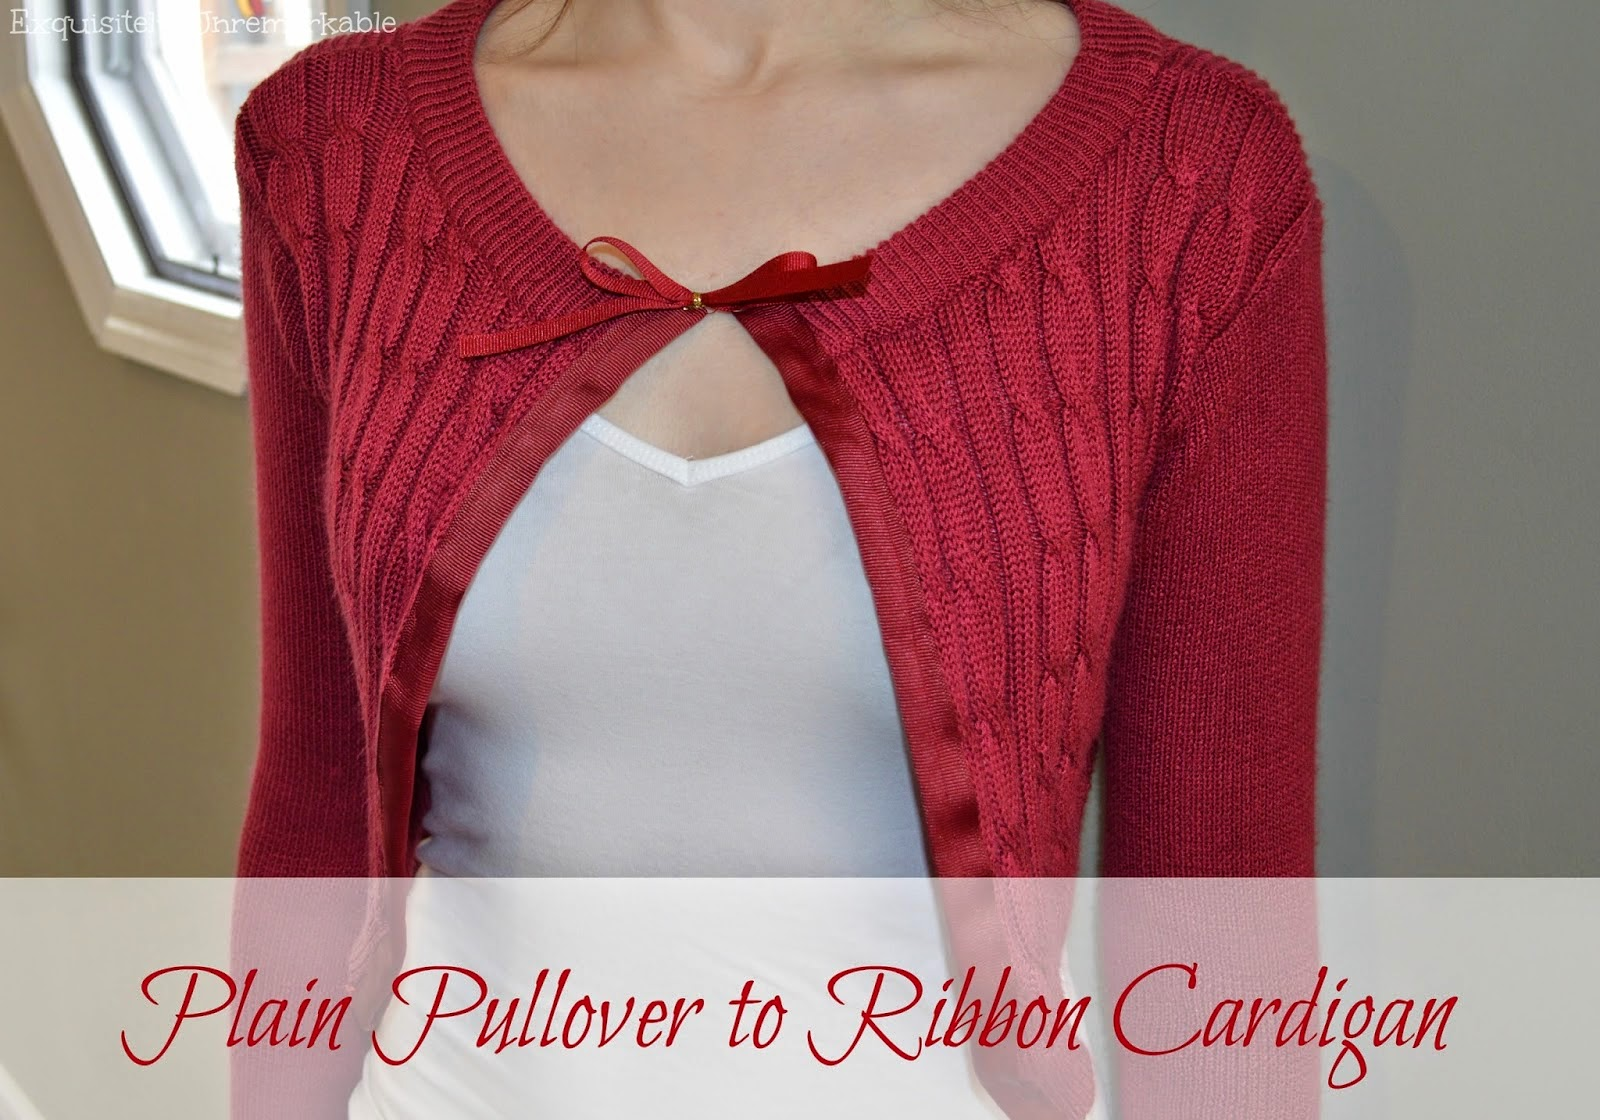 Pullover to ribbon cardigan sweater